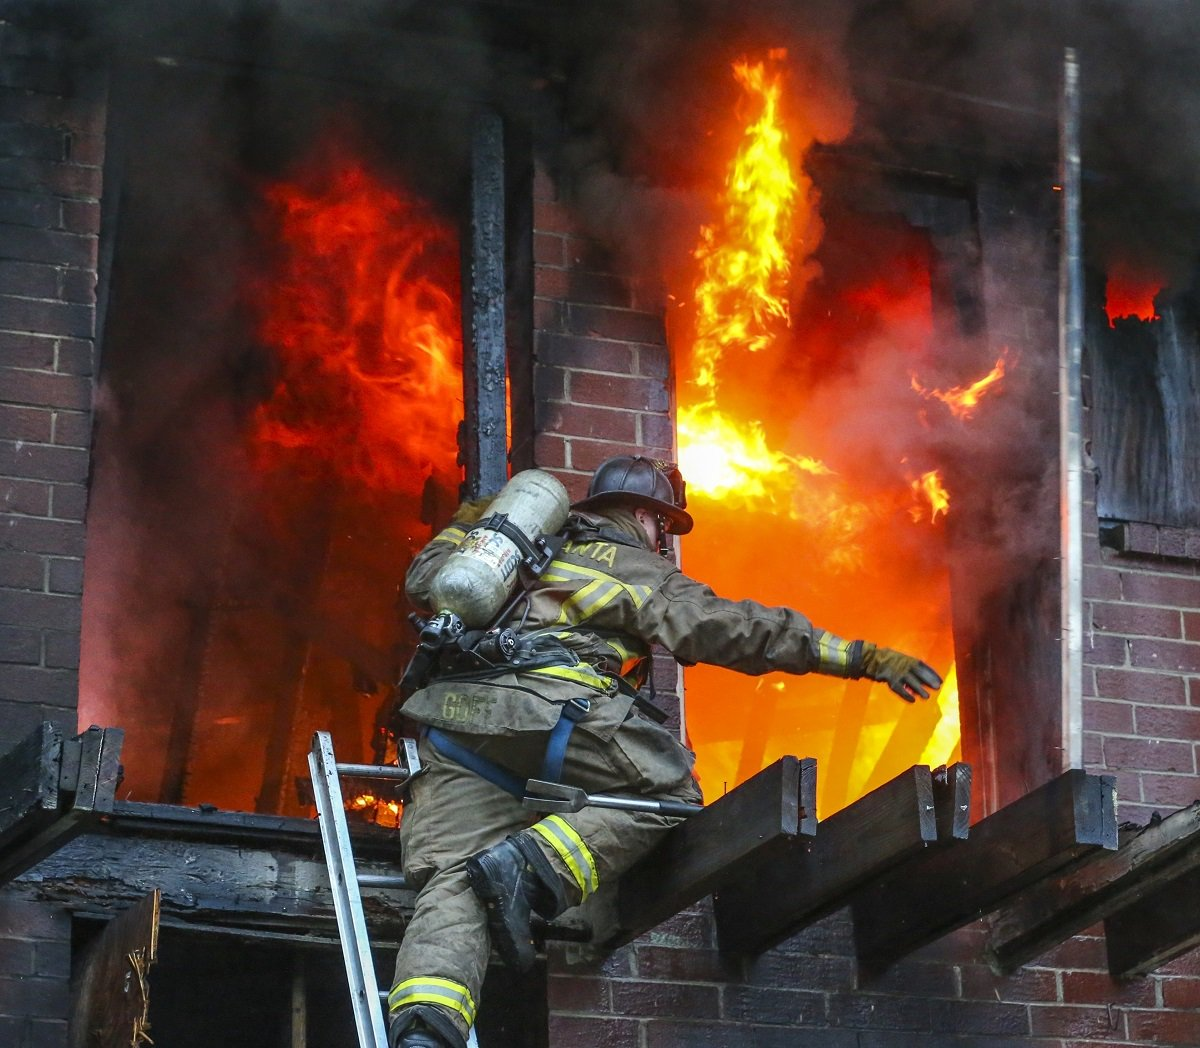 @TeddyParravani Have you ever seen fire fighting like this? AJC photographers follow ATL's Squad 4 'Into the Fire' https://t.co/srQrhmzBxn